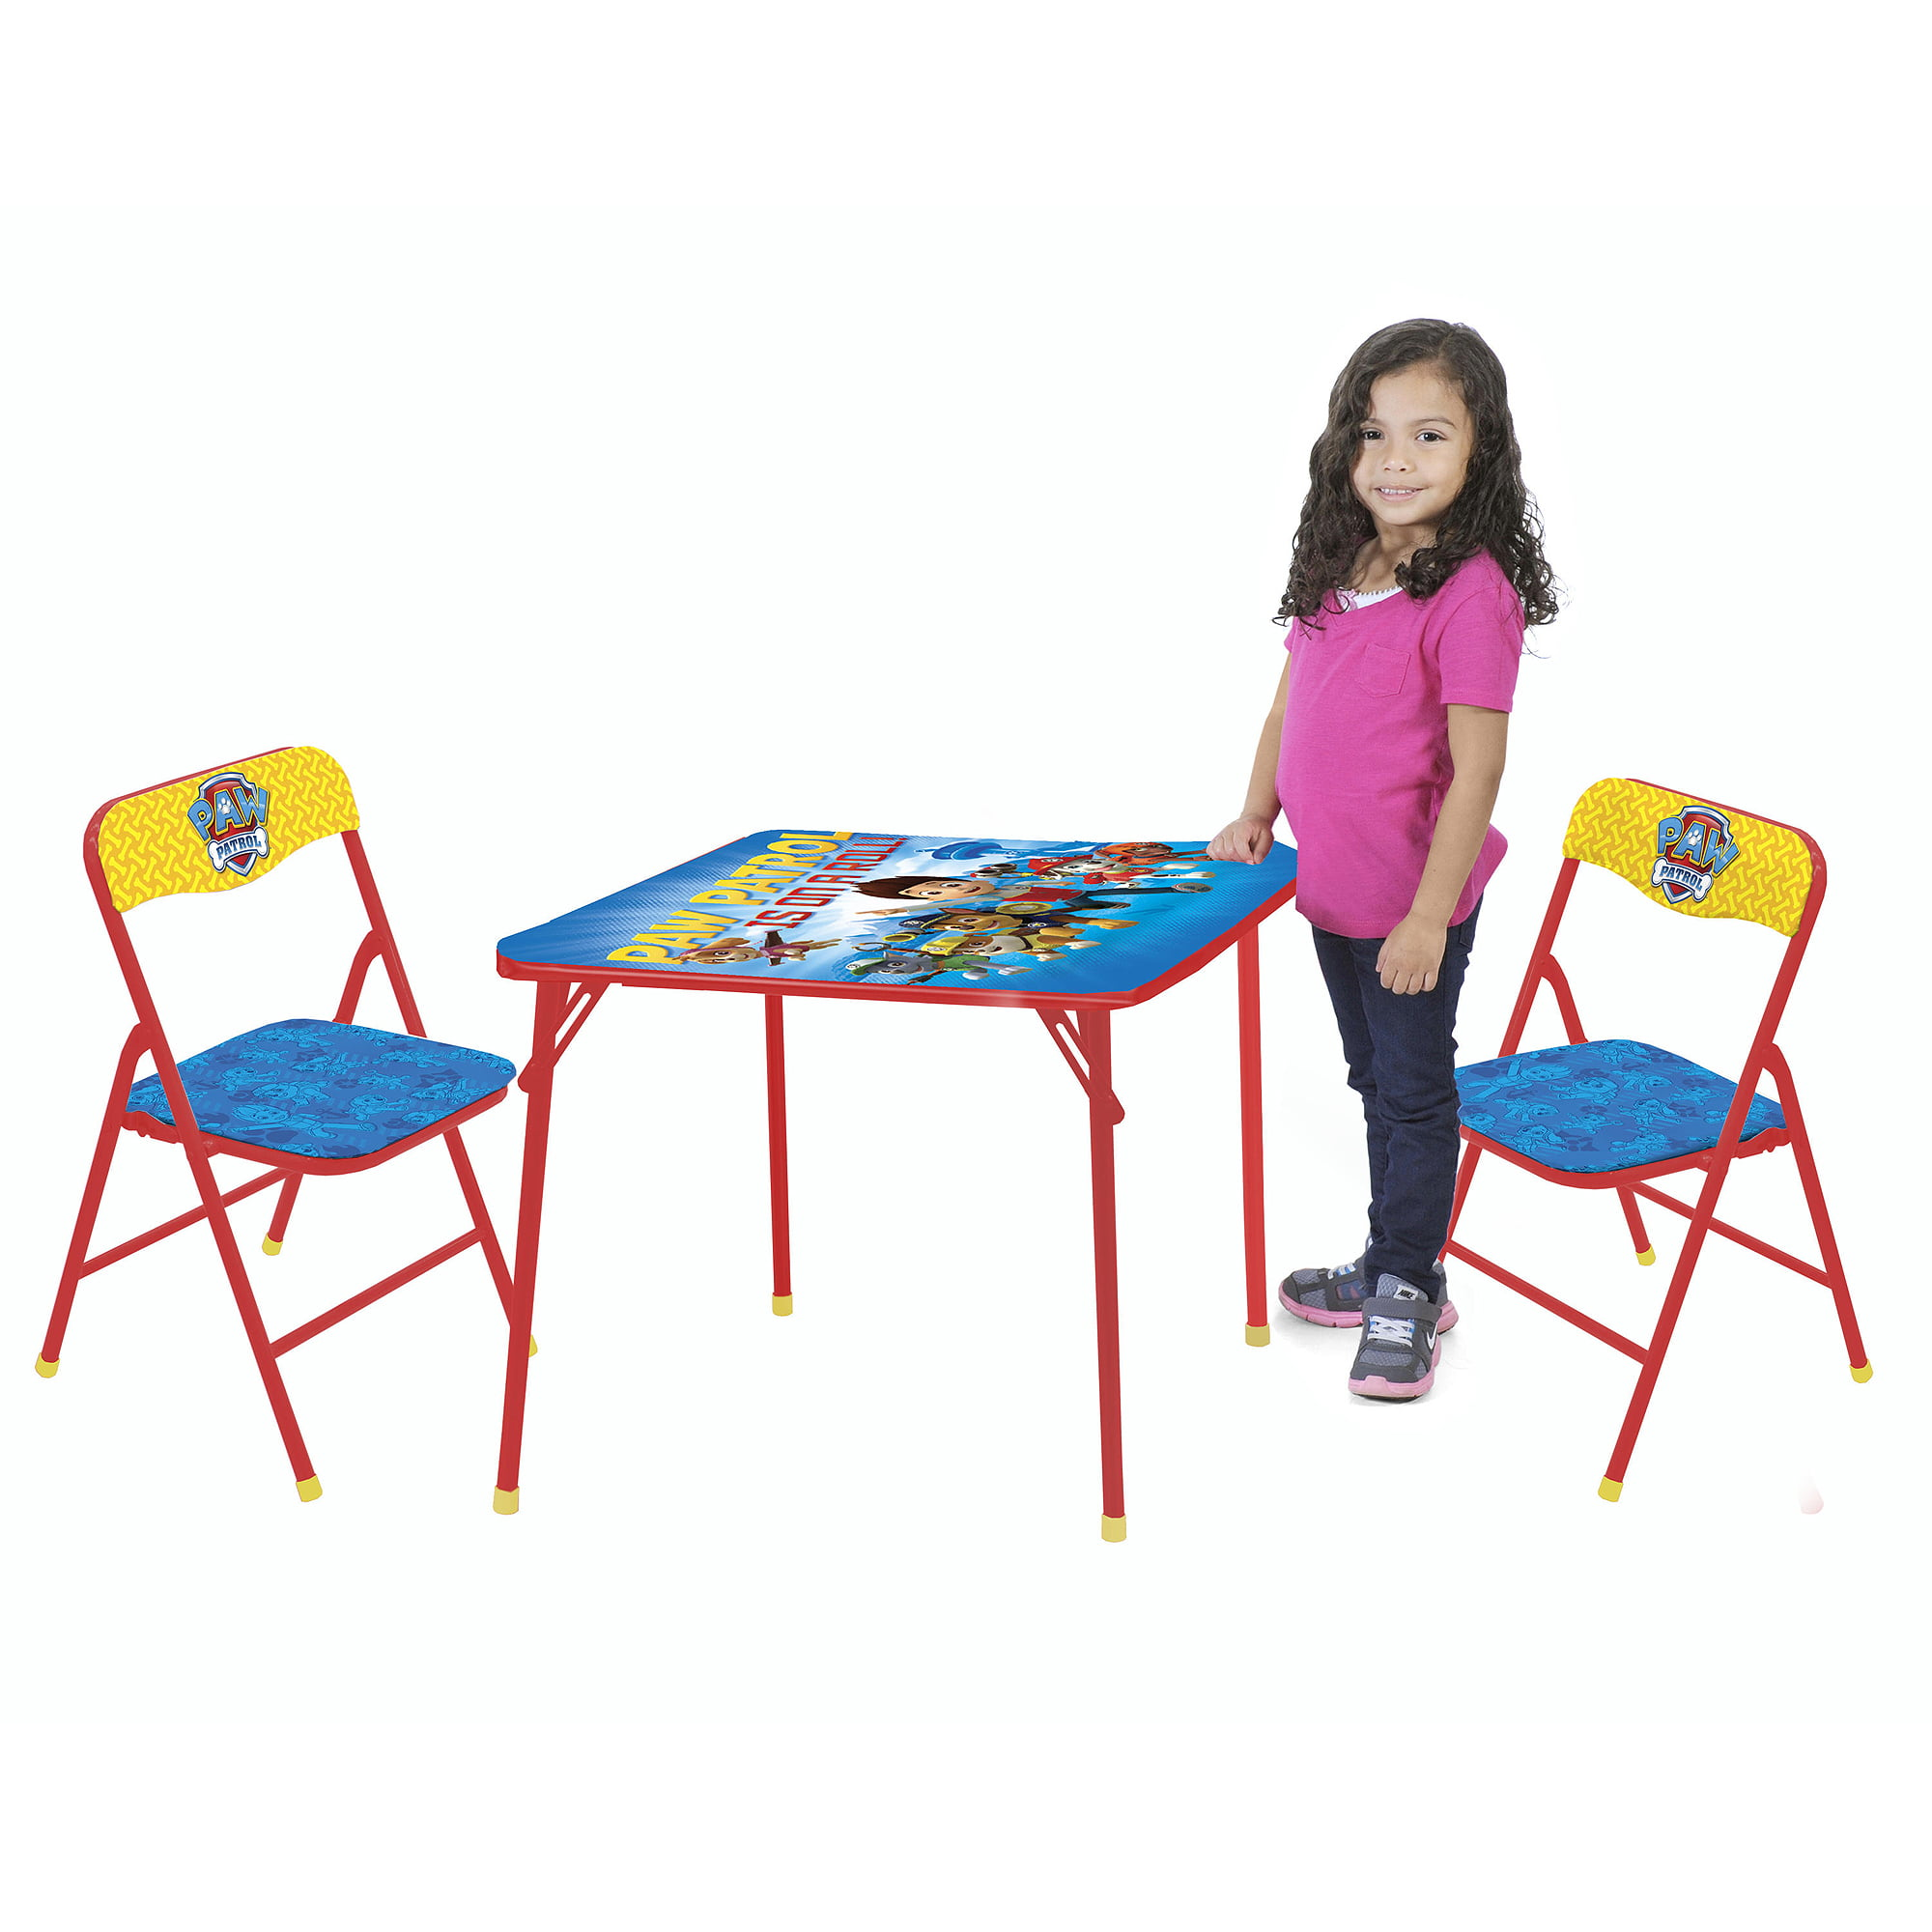 Nickelodeon Paw Patrol 3-Piece Table and Chair Set by Nickelodeon